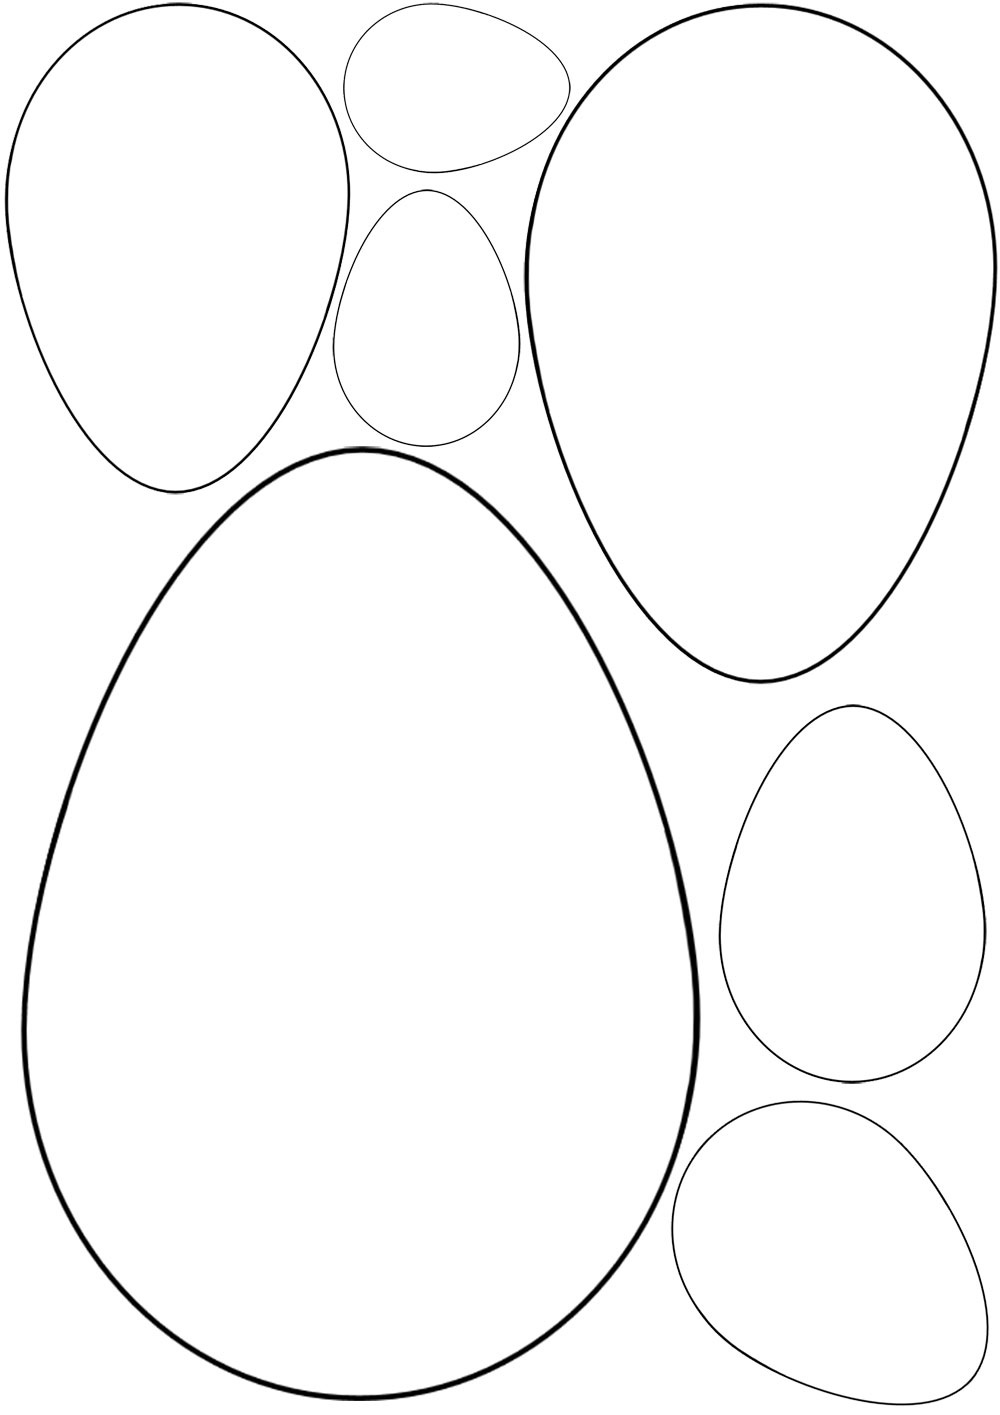 blank-easter-egg-template-cut-out